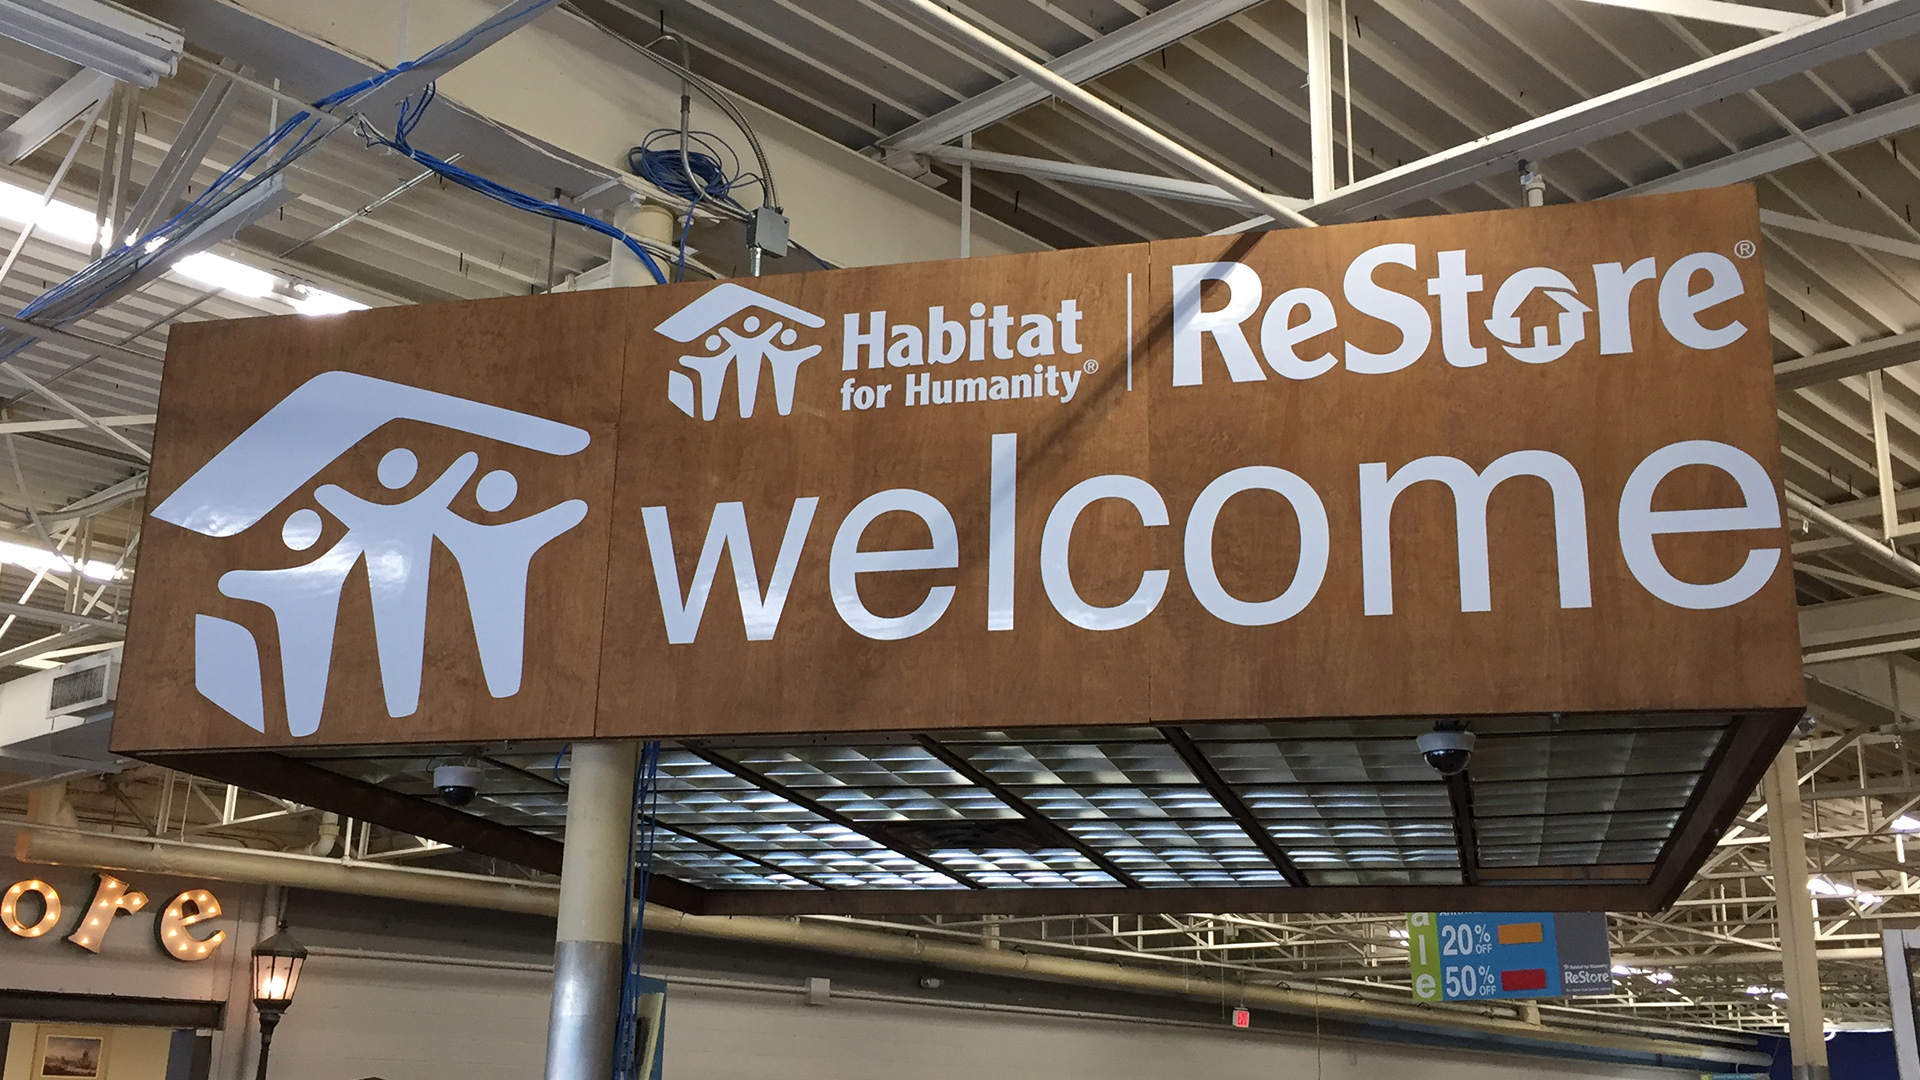 Habitat for humanity restore welcome sign